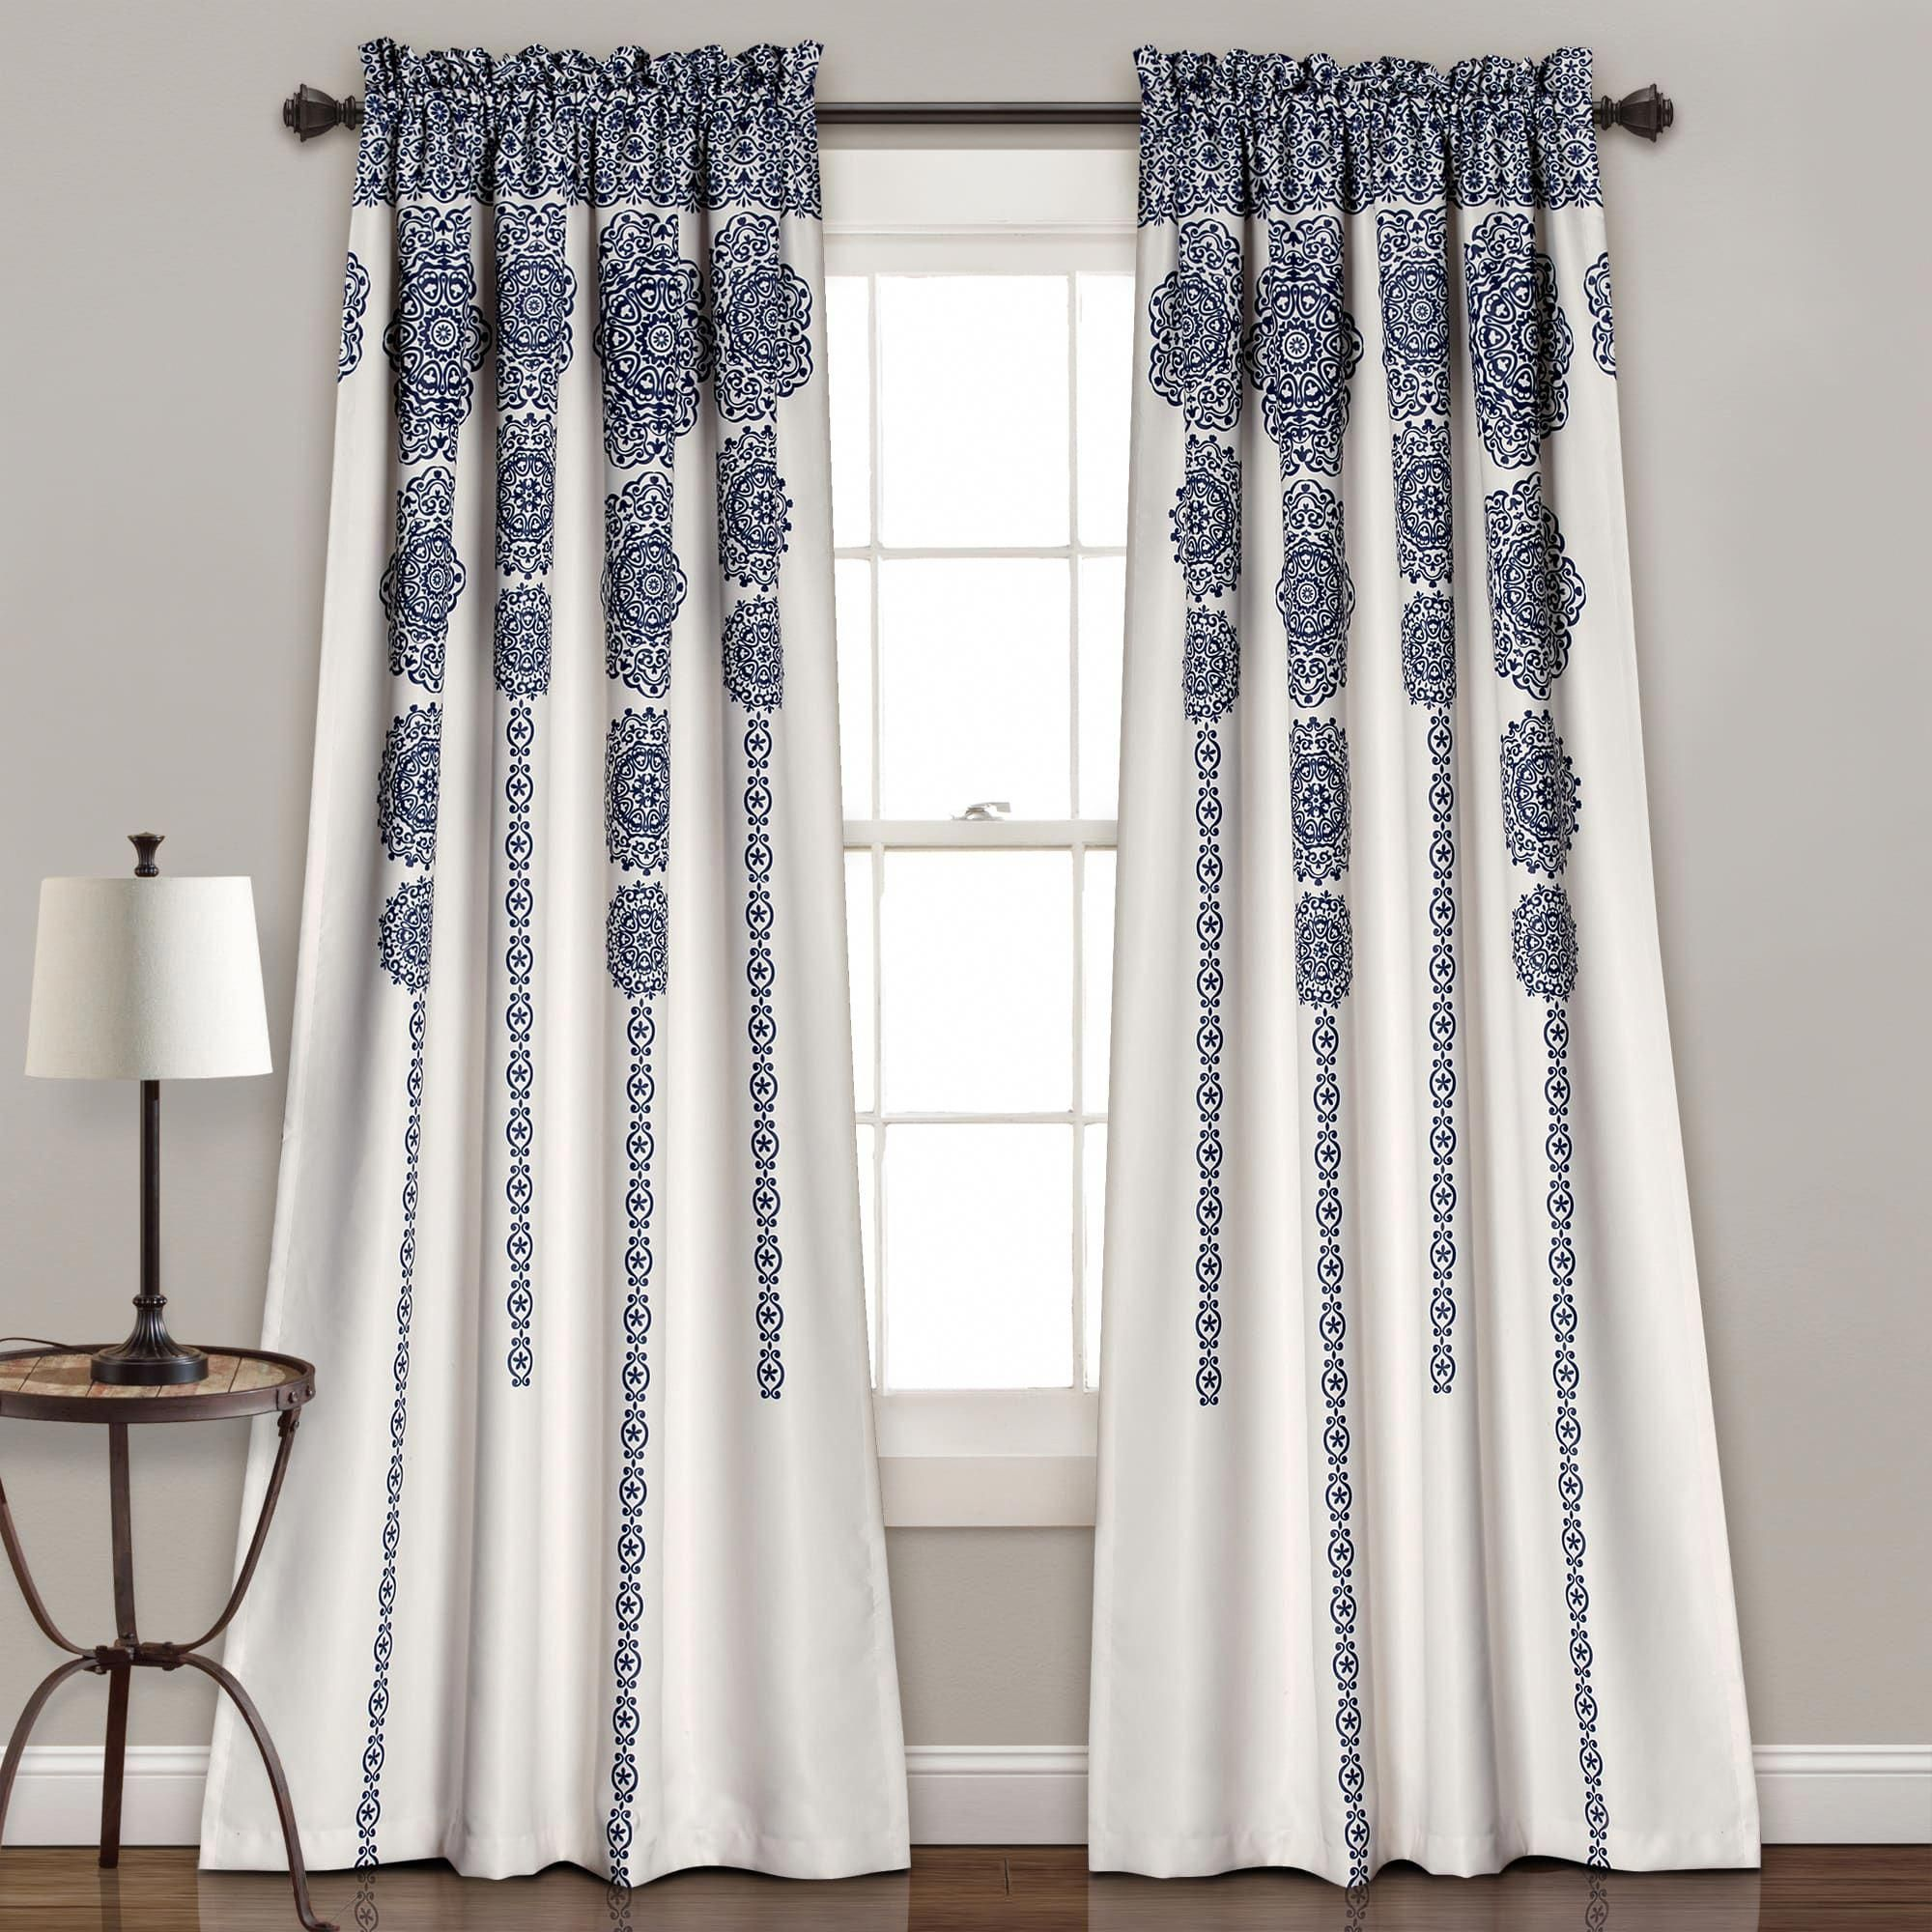 36 Inch Room Darkening Curtains Lush Decor Stripe Medallion Room Darkening Curtain Panel Pair 84